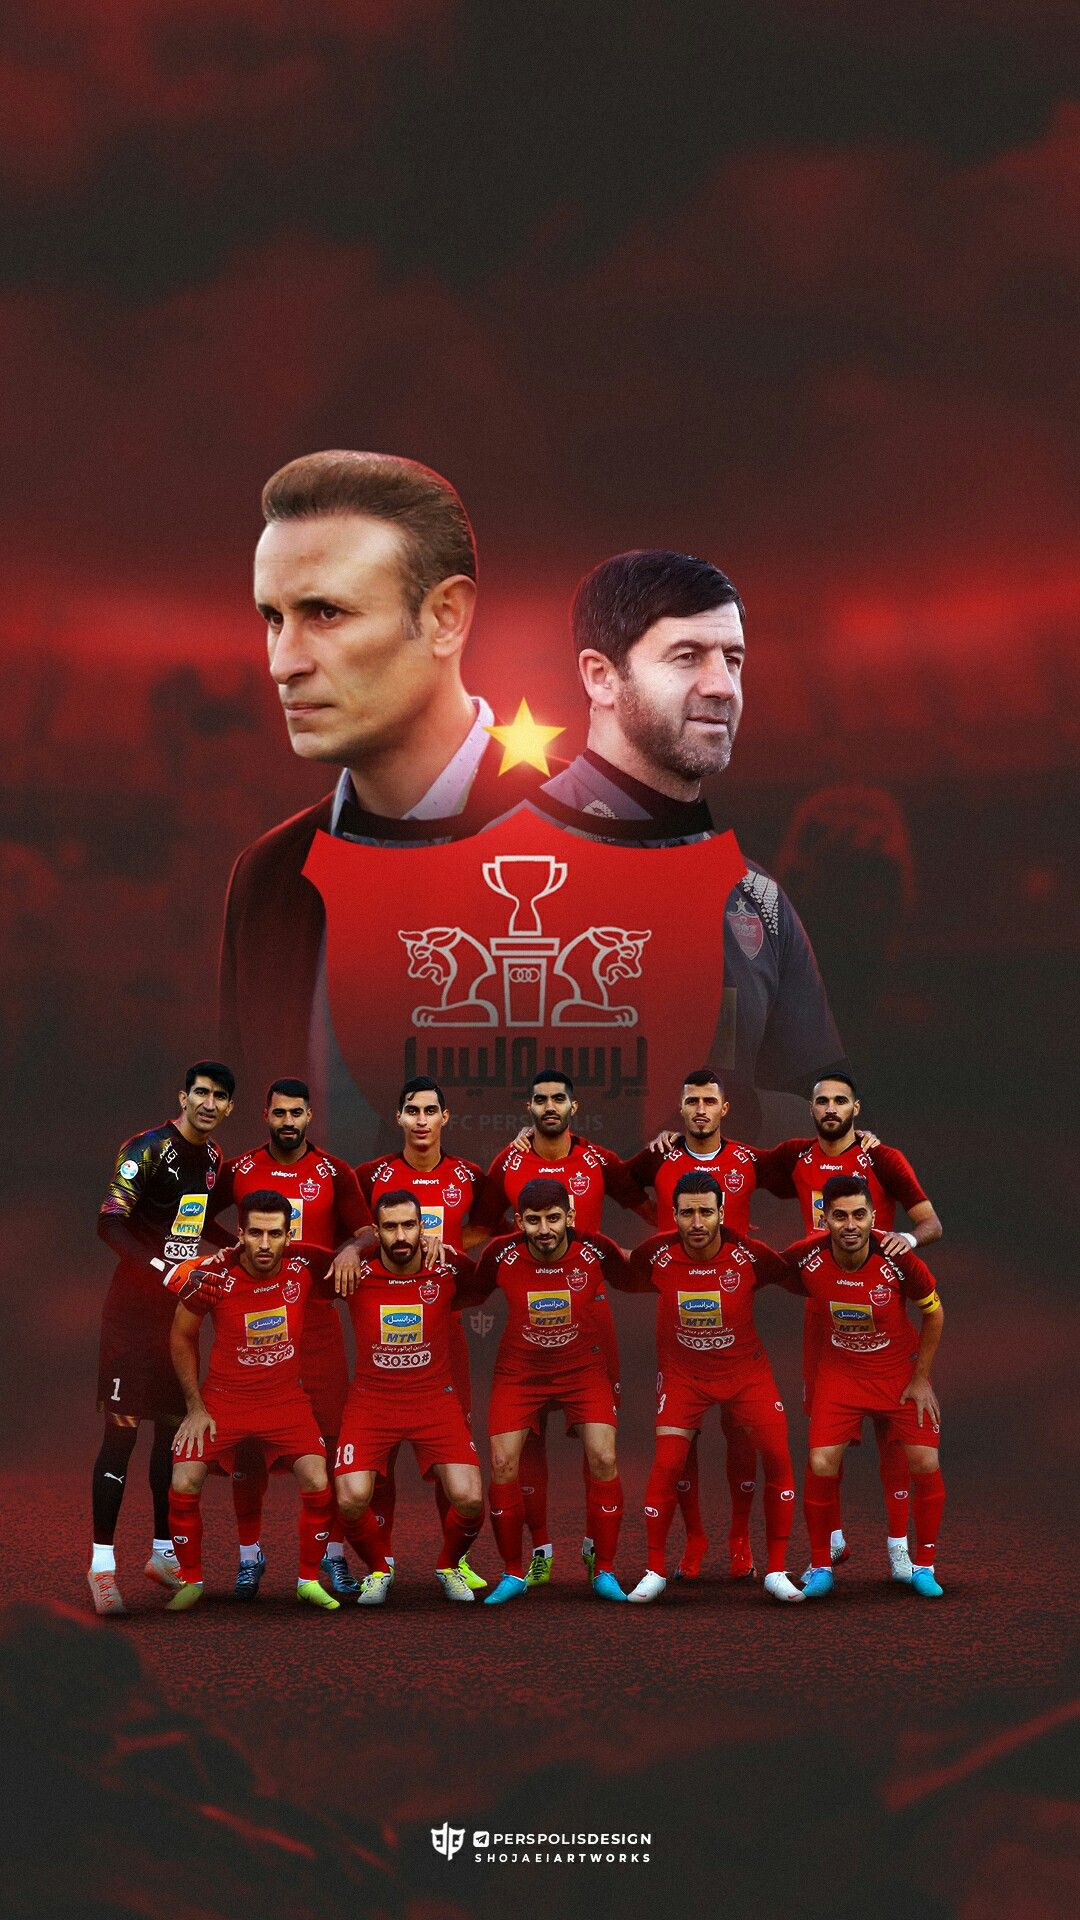 Pin By Cappuccino One On Perspolice Love In 2020 Iran Football Iphone Wallpaper Tumblr Aesthetic Football